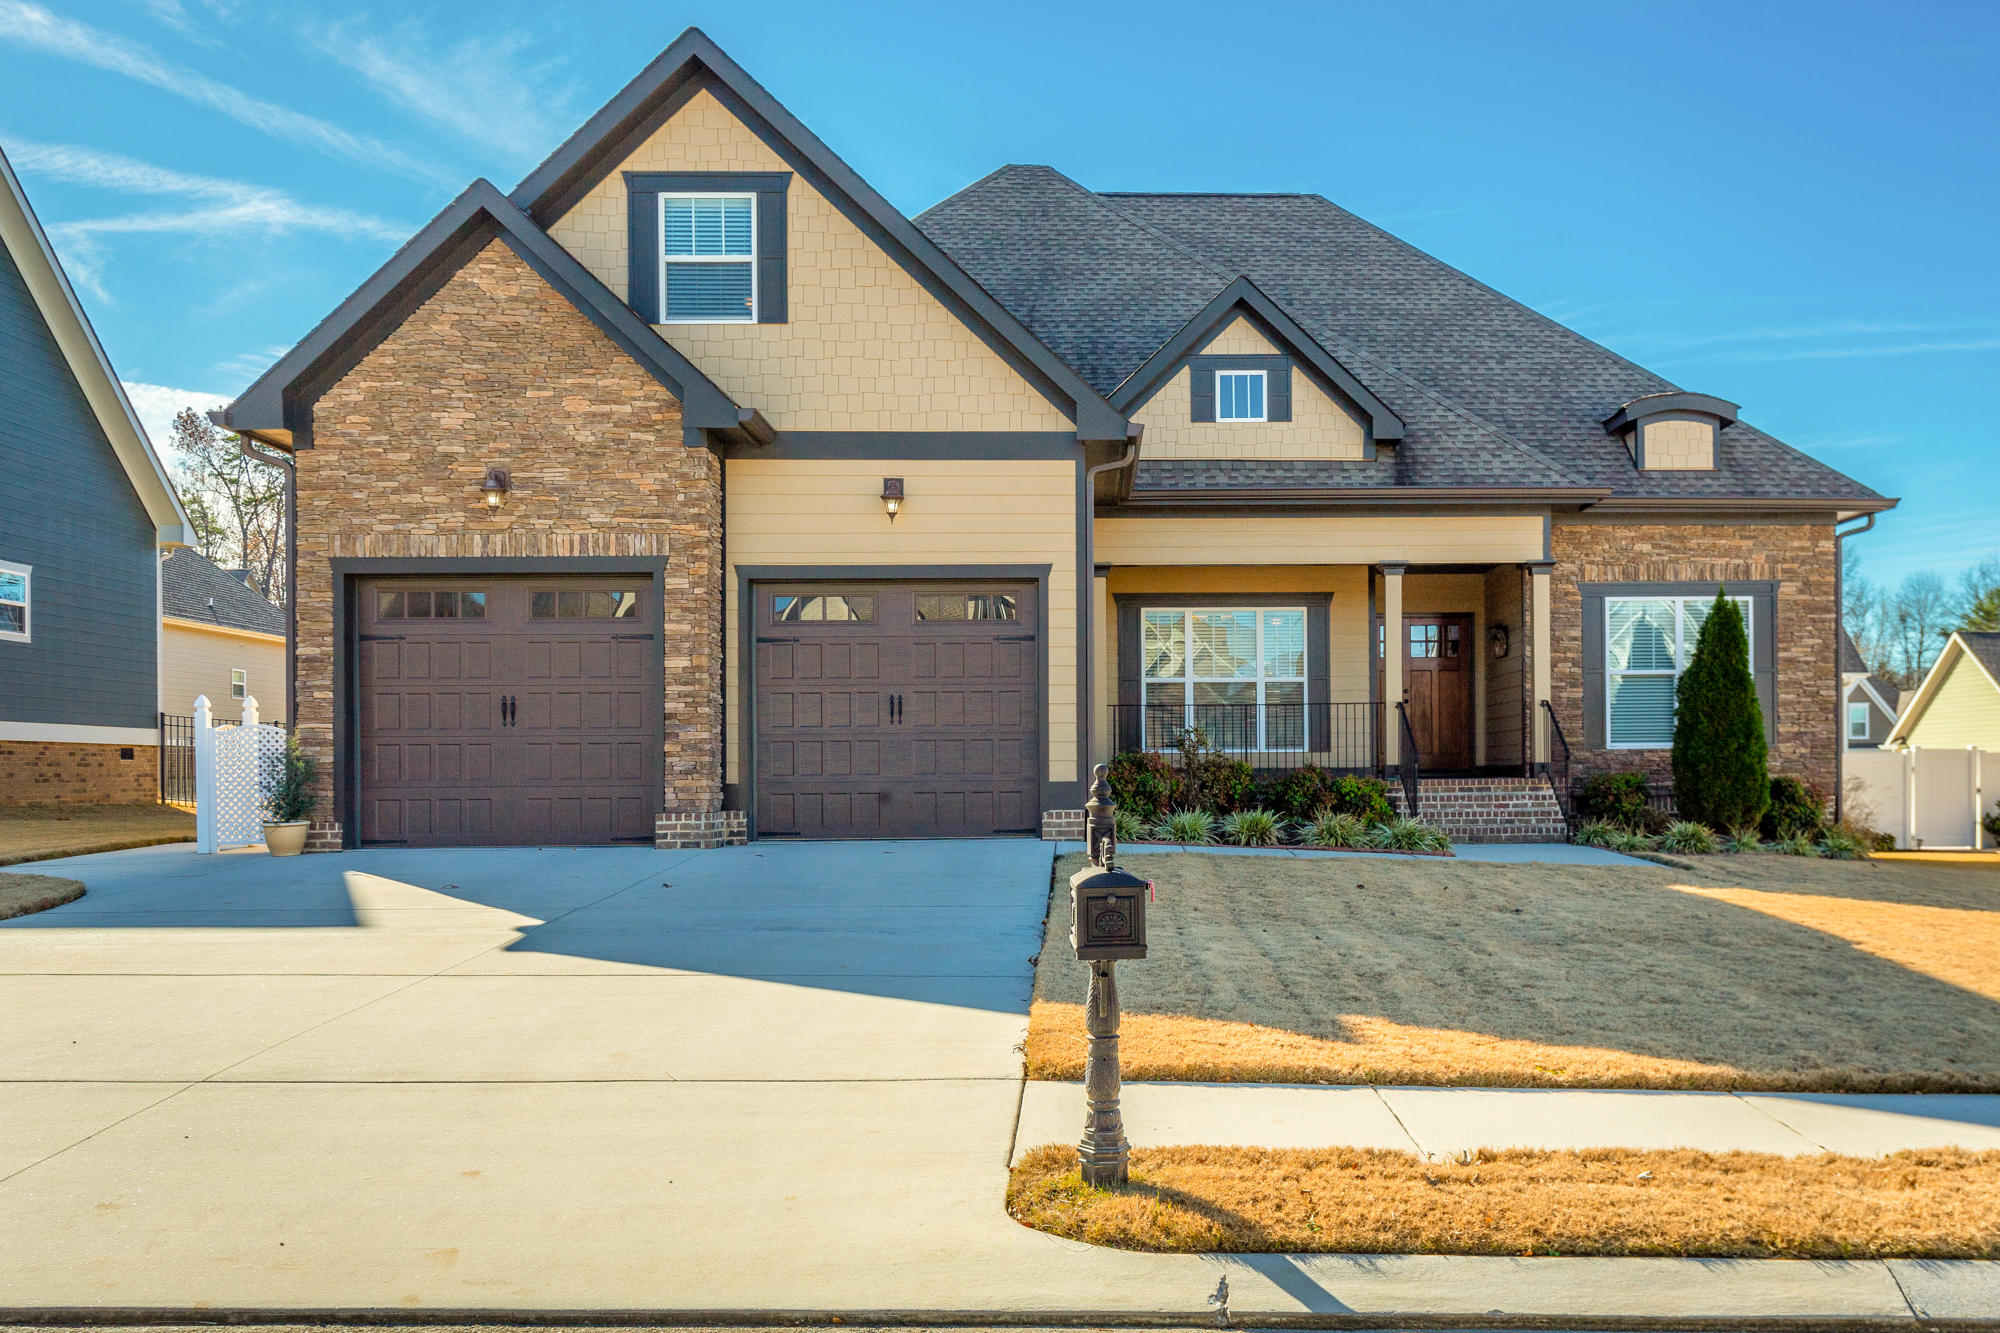 8507 Deer Run Cir, Ooltewah, TN 37363